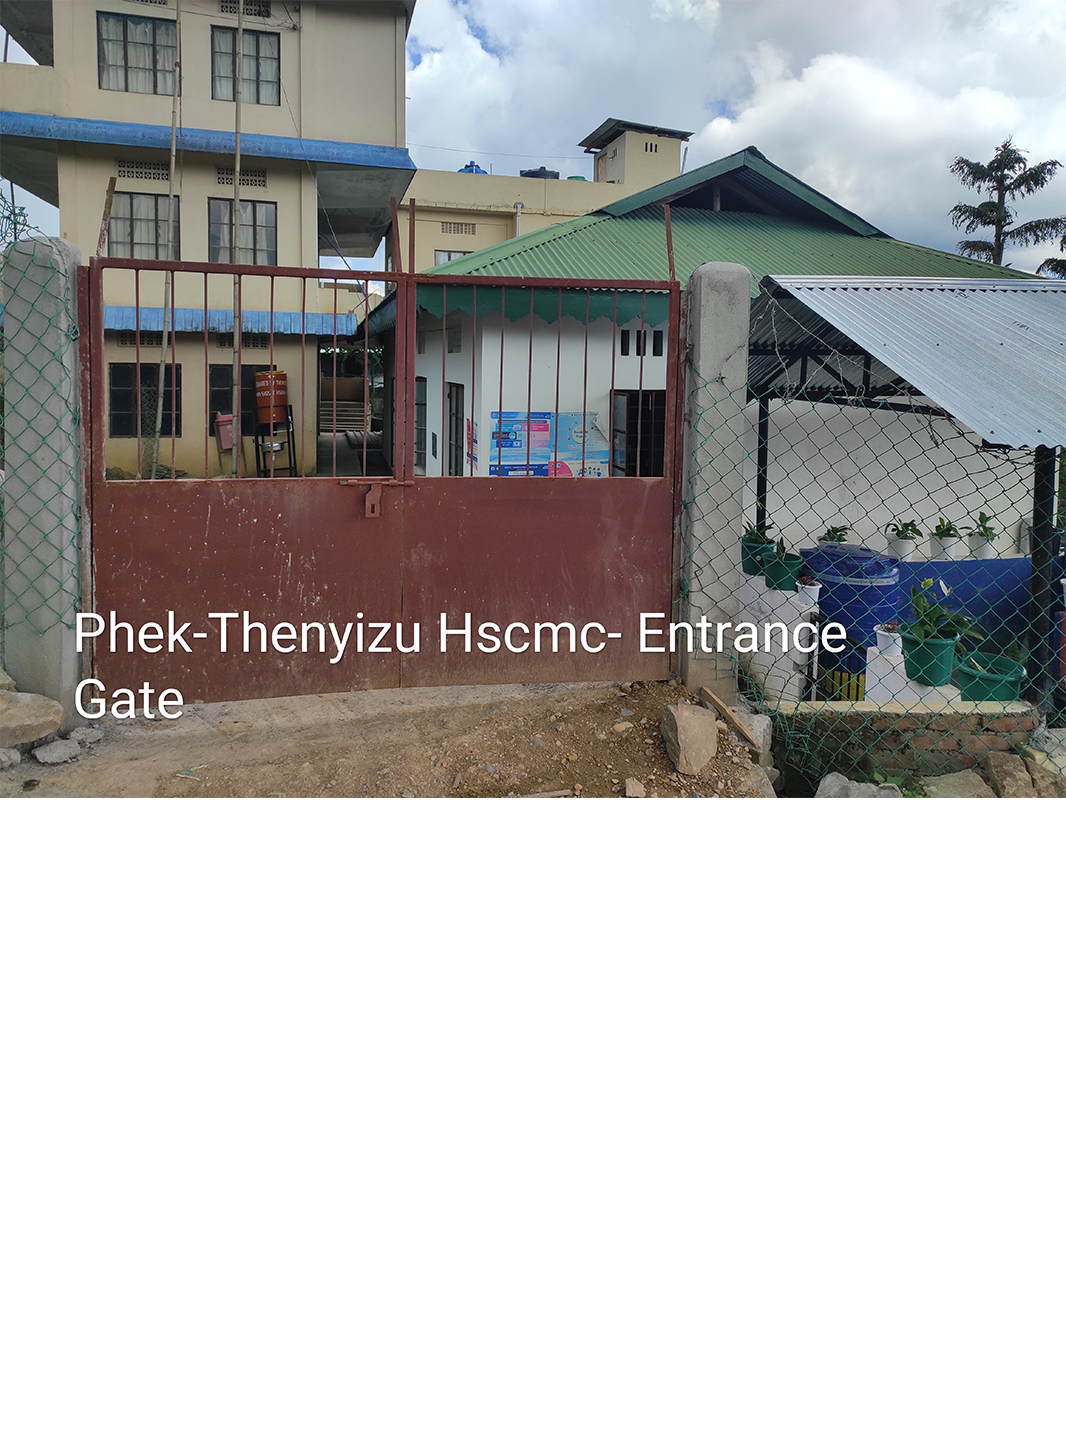 Phek-Thenyizu-Hscmc-Entrance